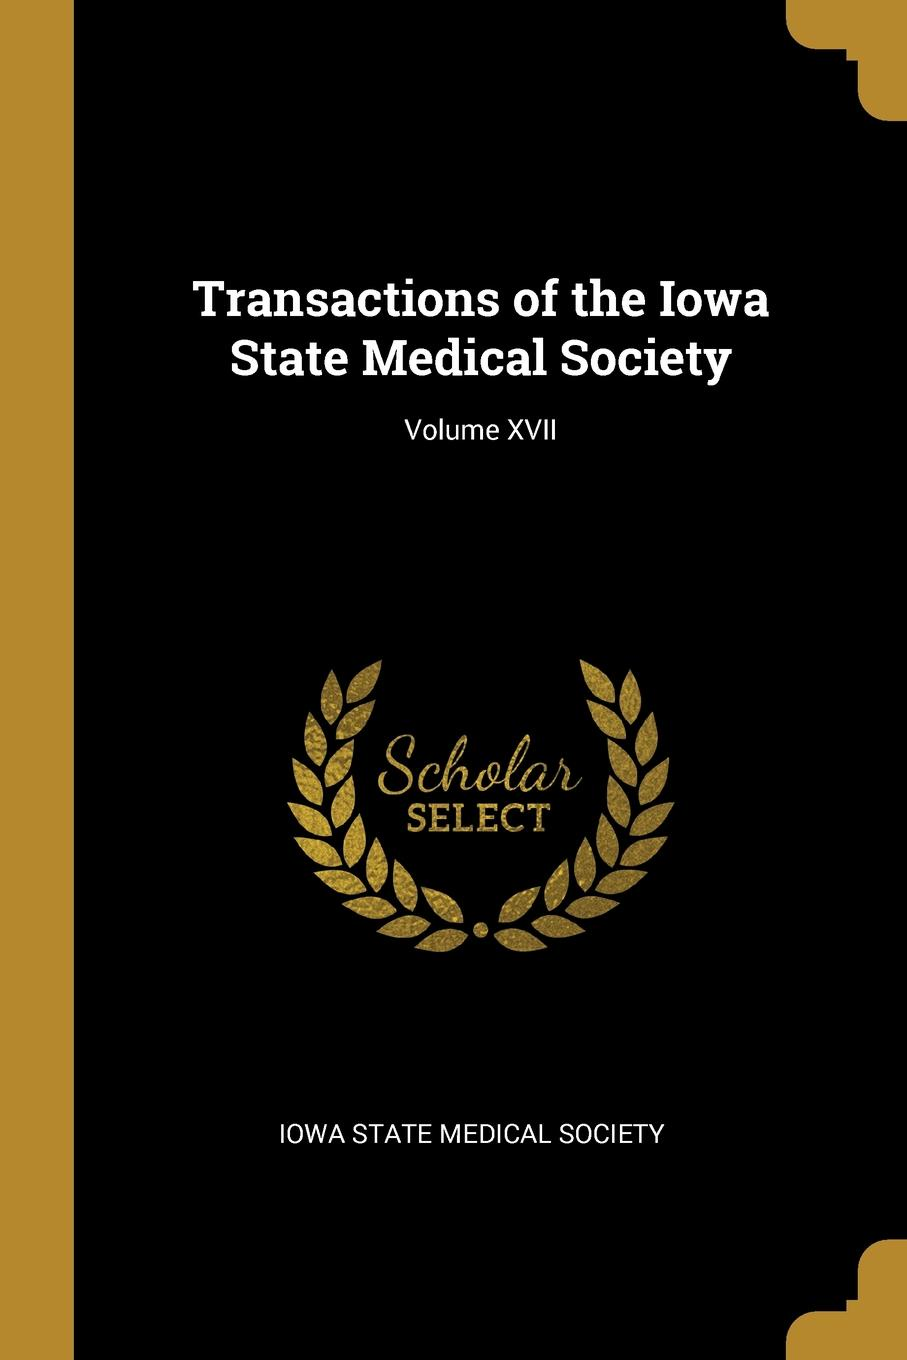 Iowa State Medical Society Transactions of the Iowa State Medical Society; Volume XVII